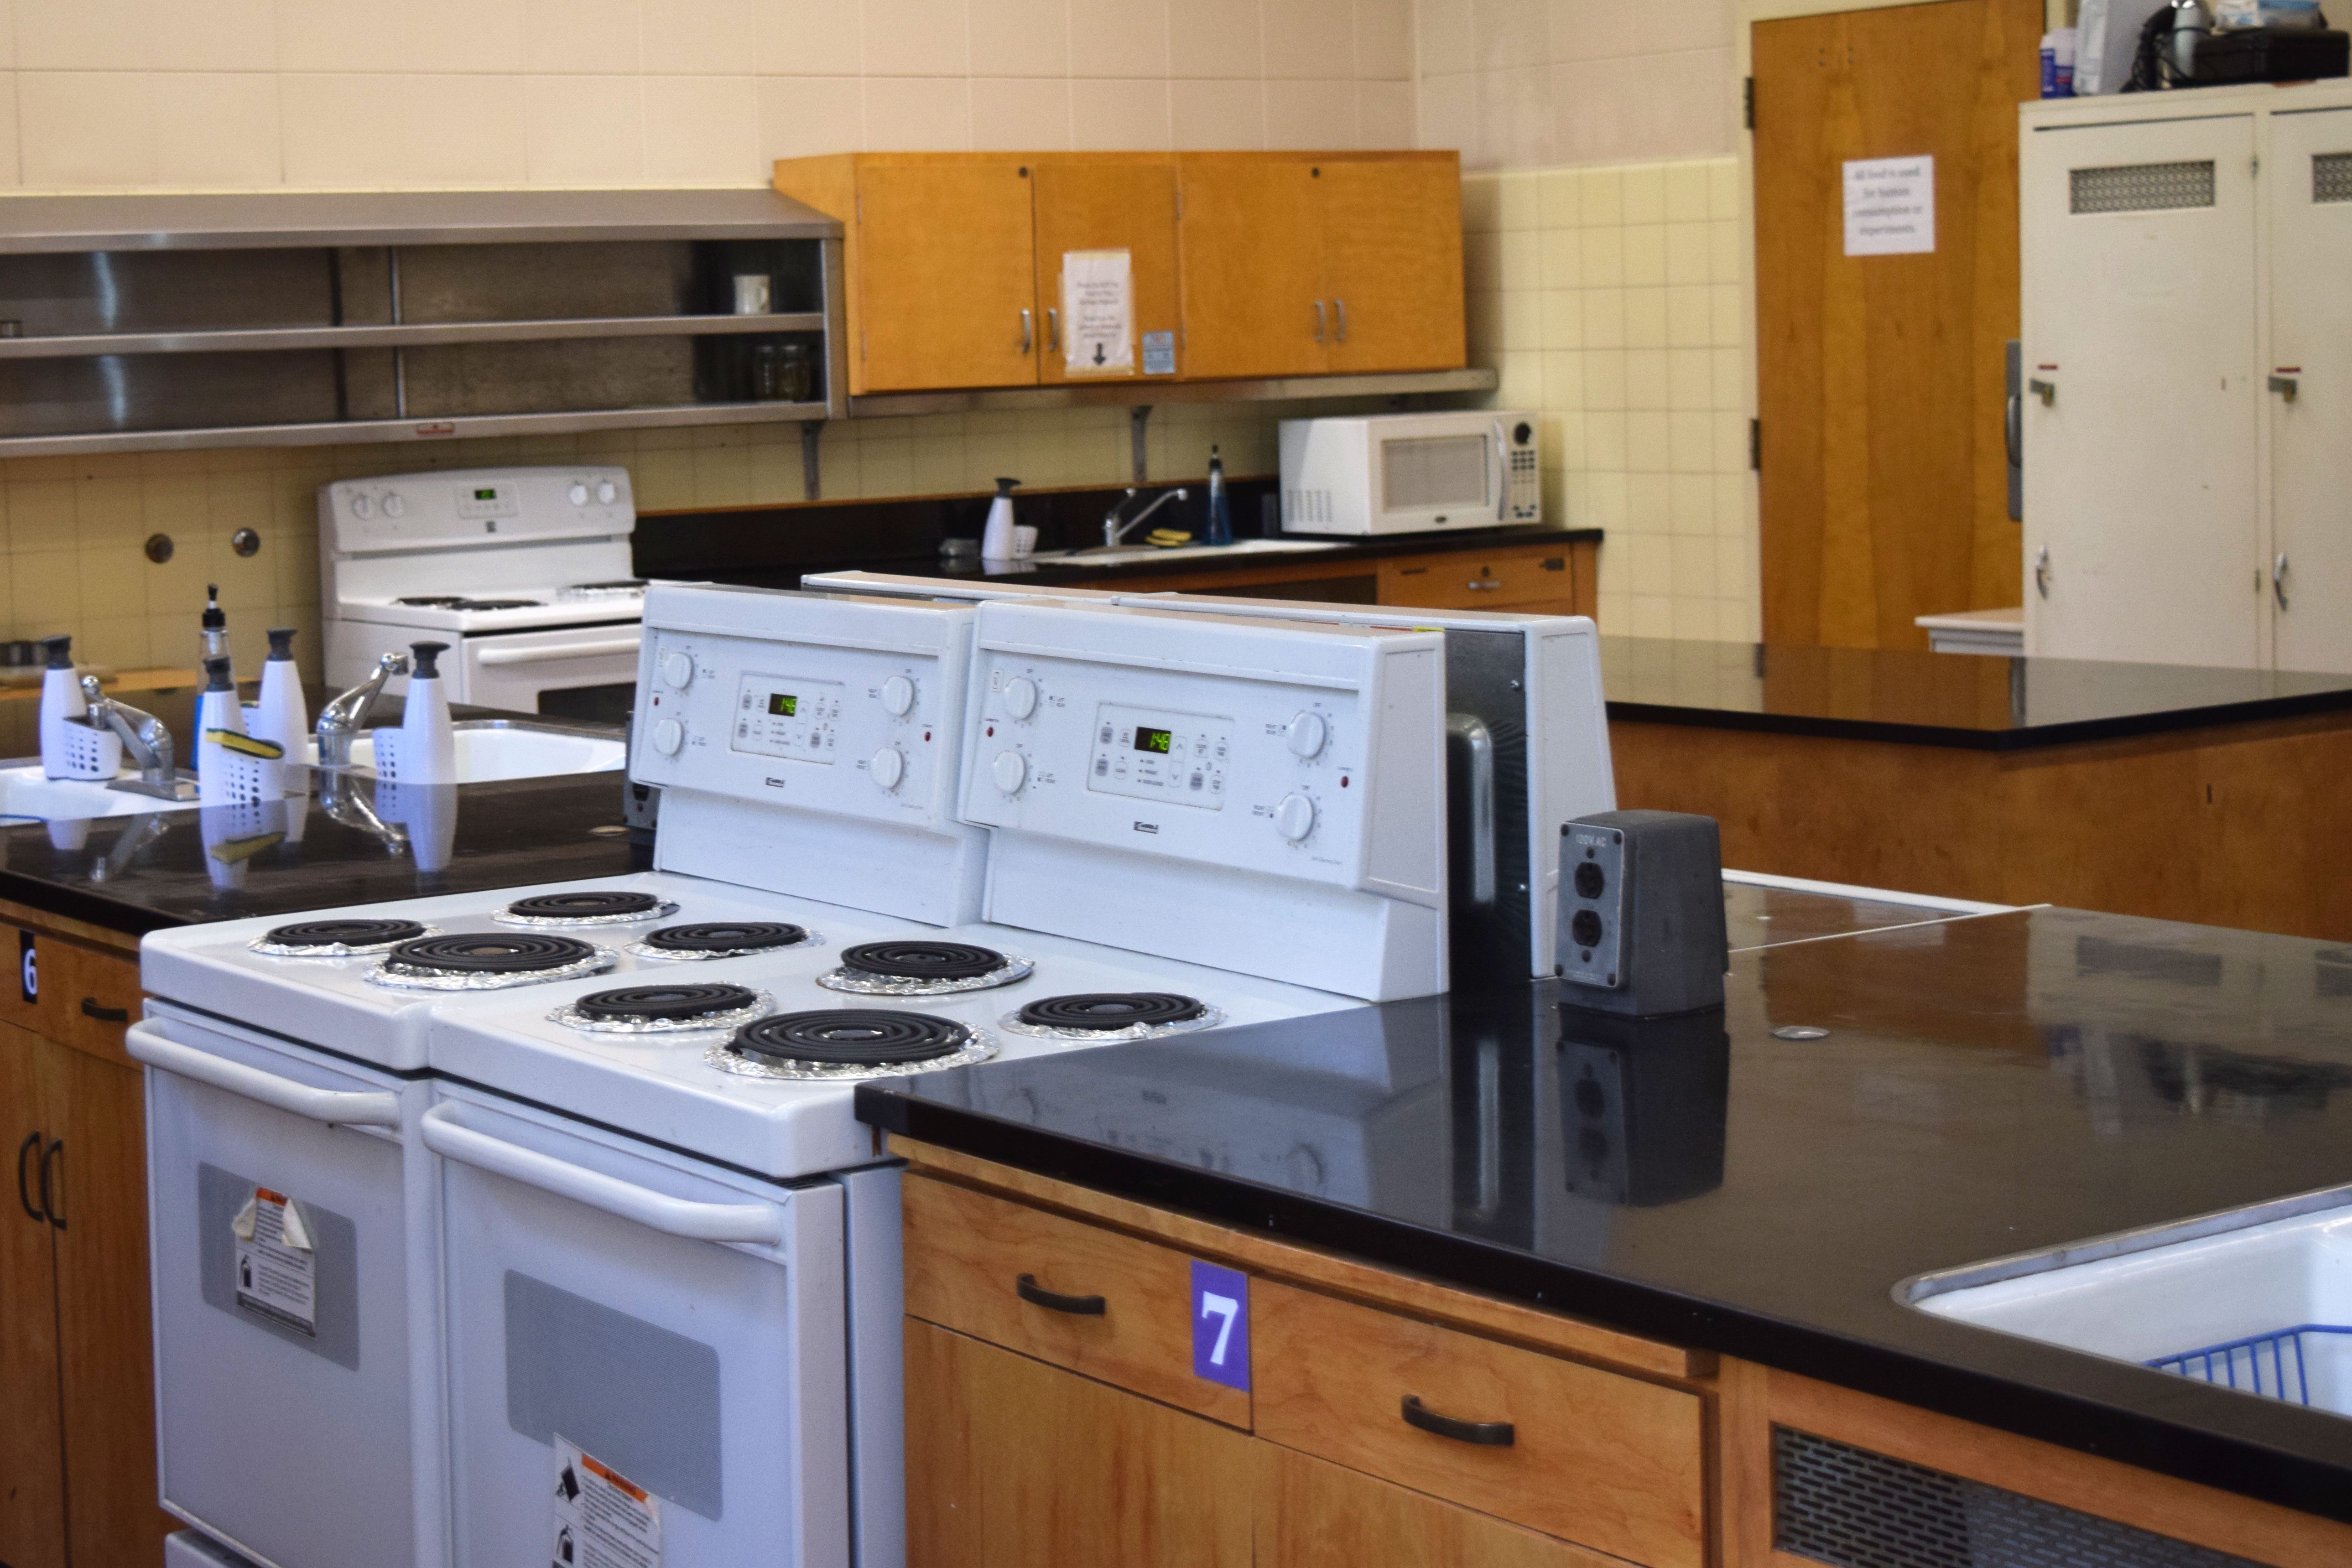 Image of the Cal Teaching Kitchen